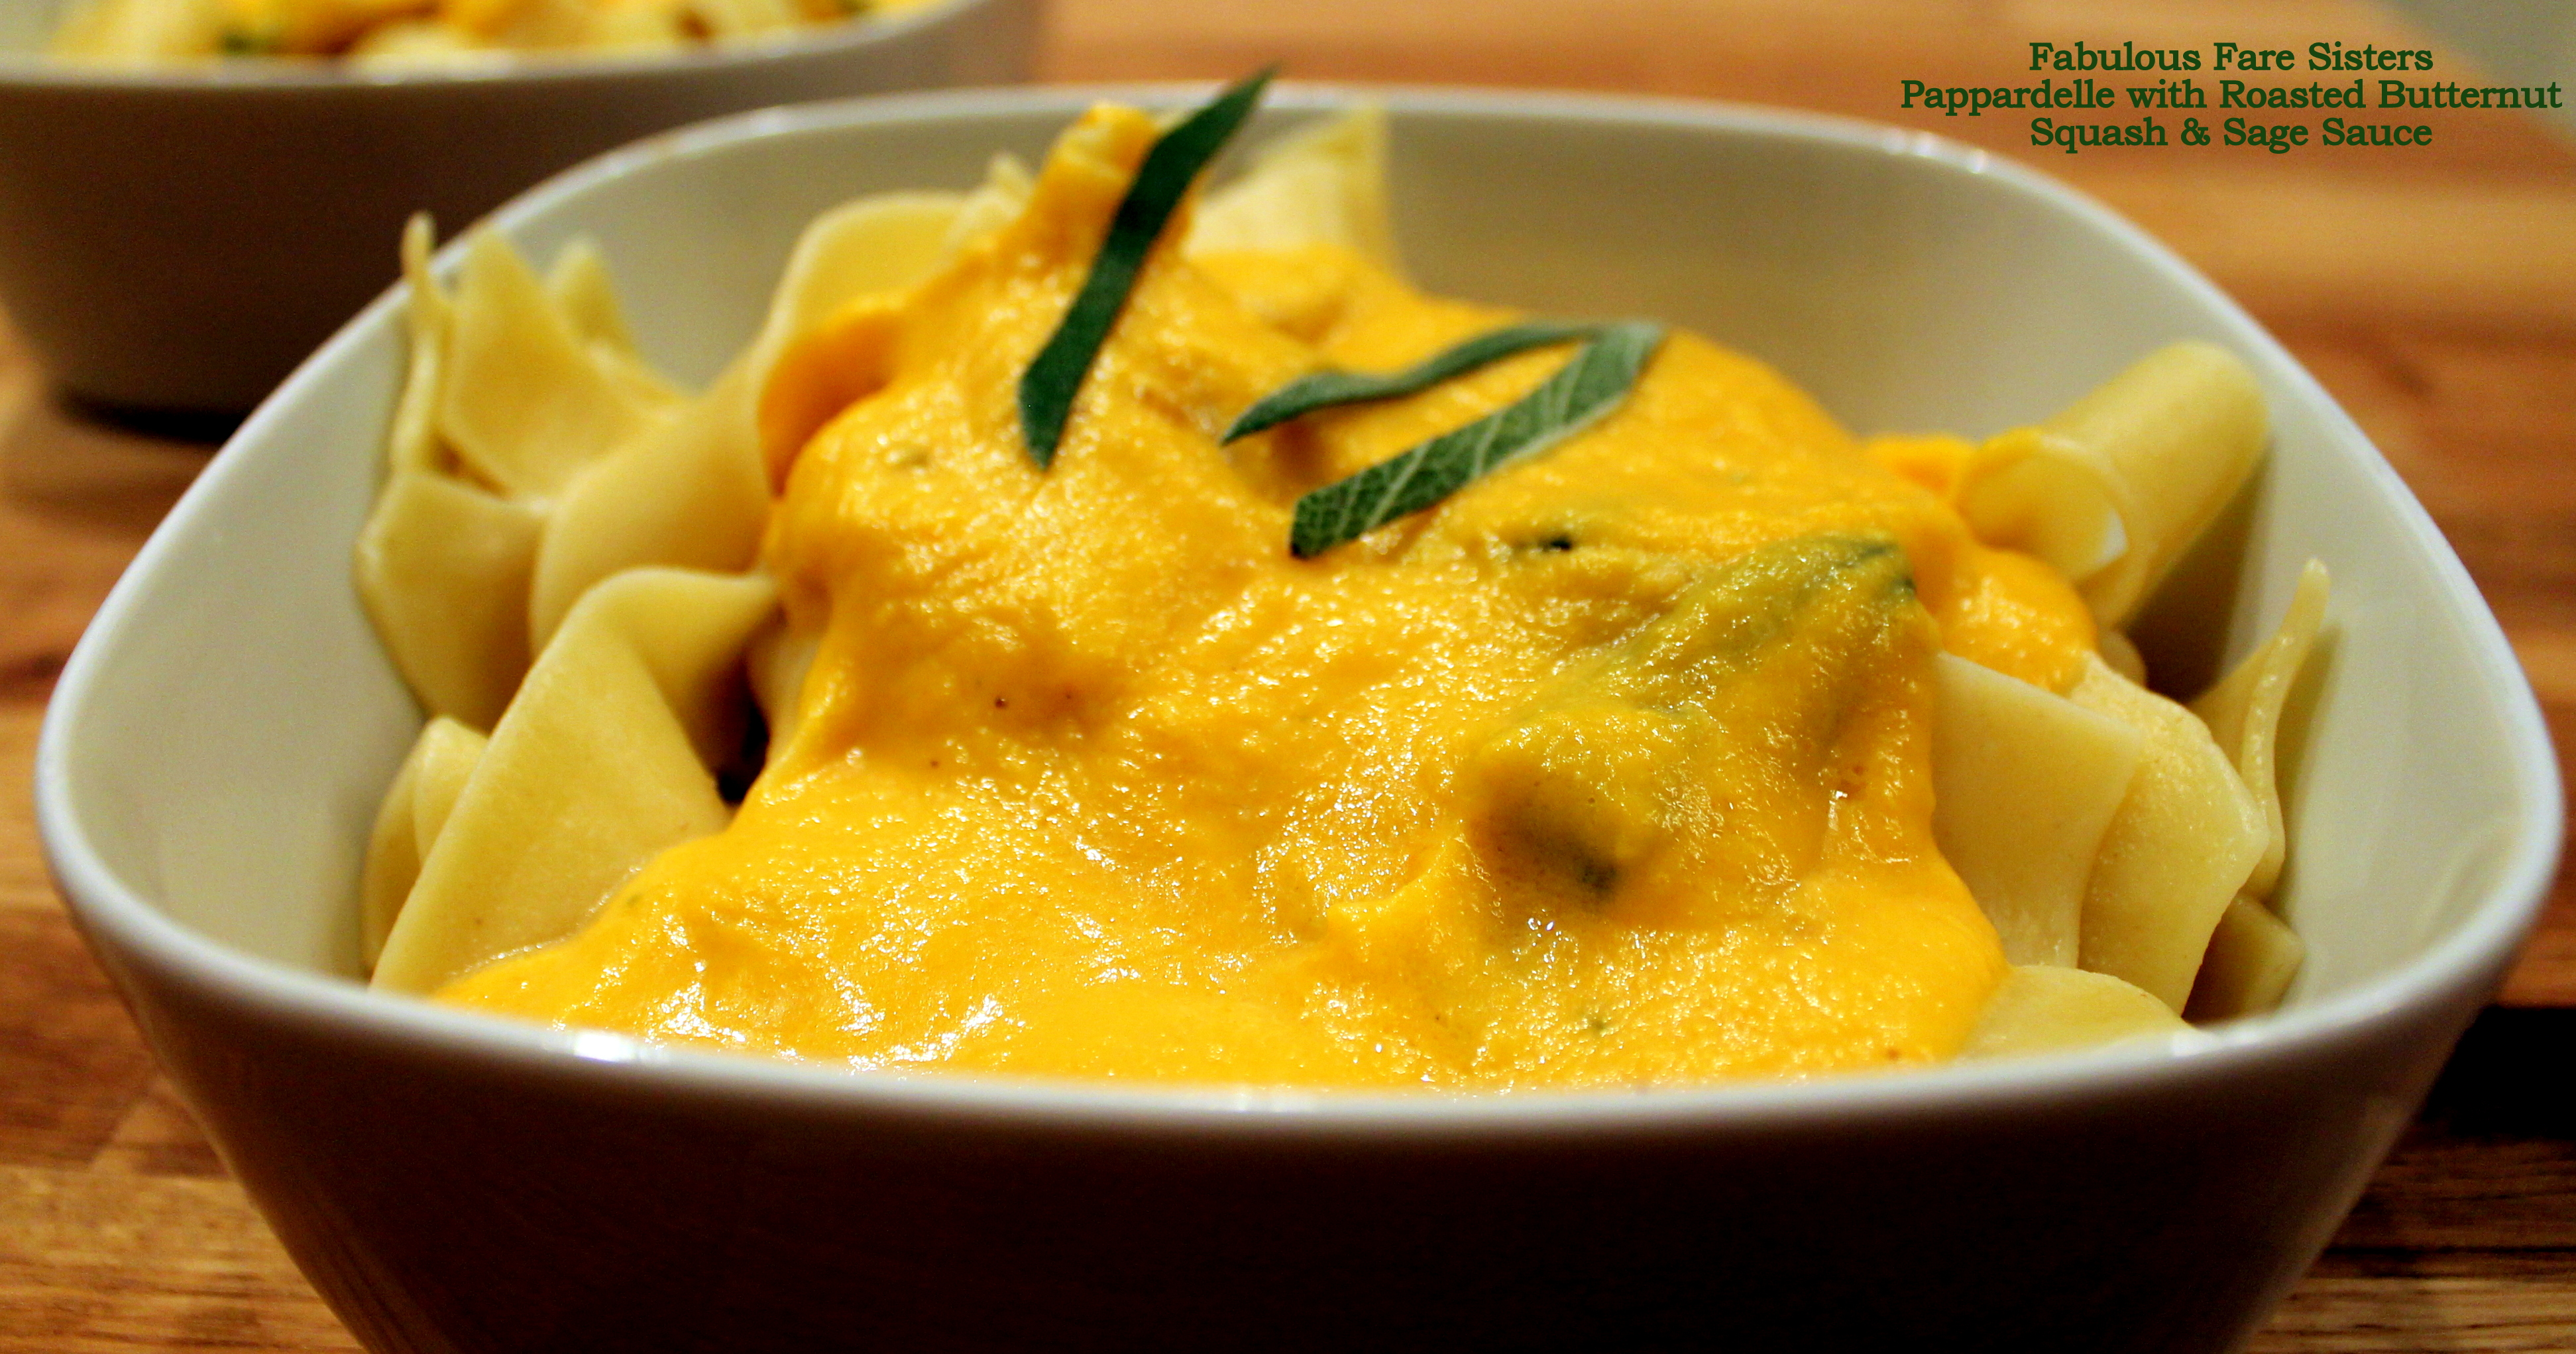 ... with Roasted Butternut Squash & Sage Sauce – Fabulous Fare Sisters